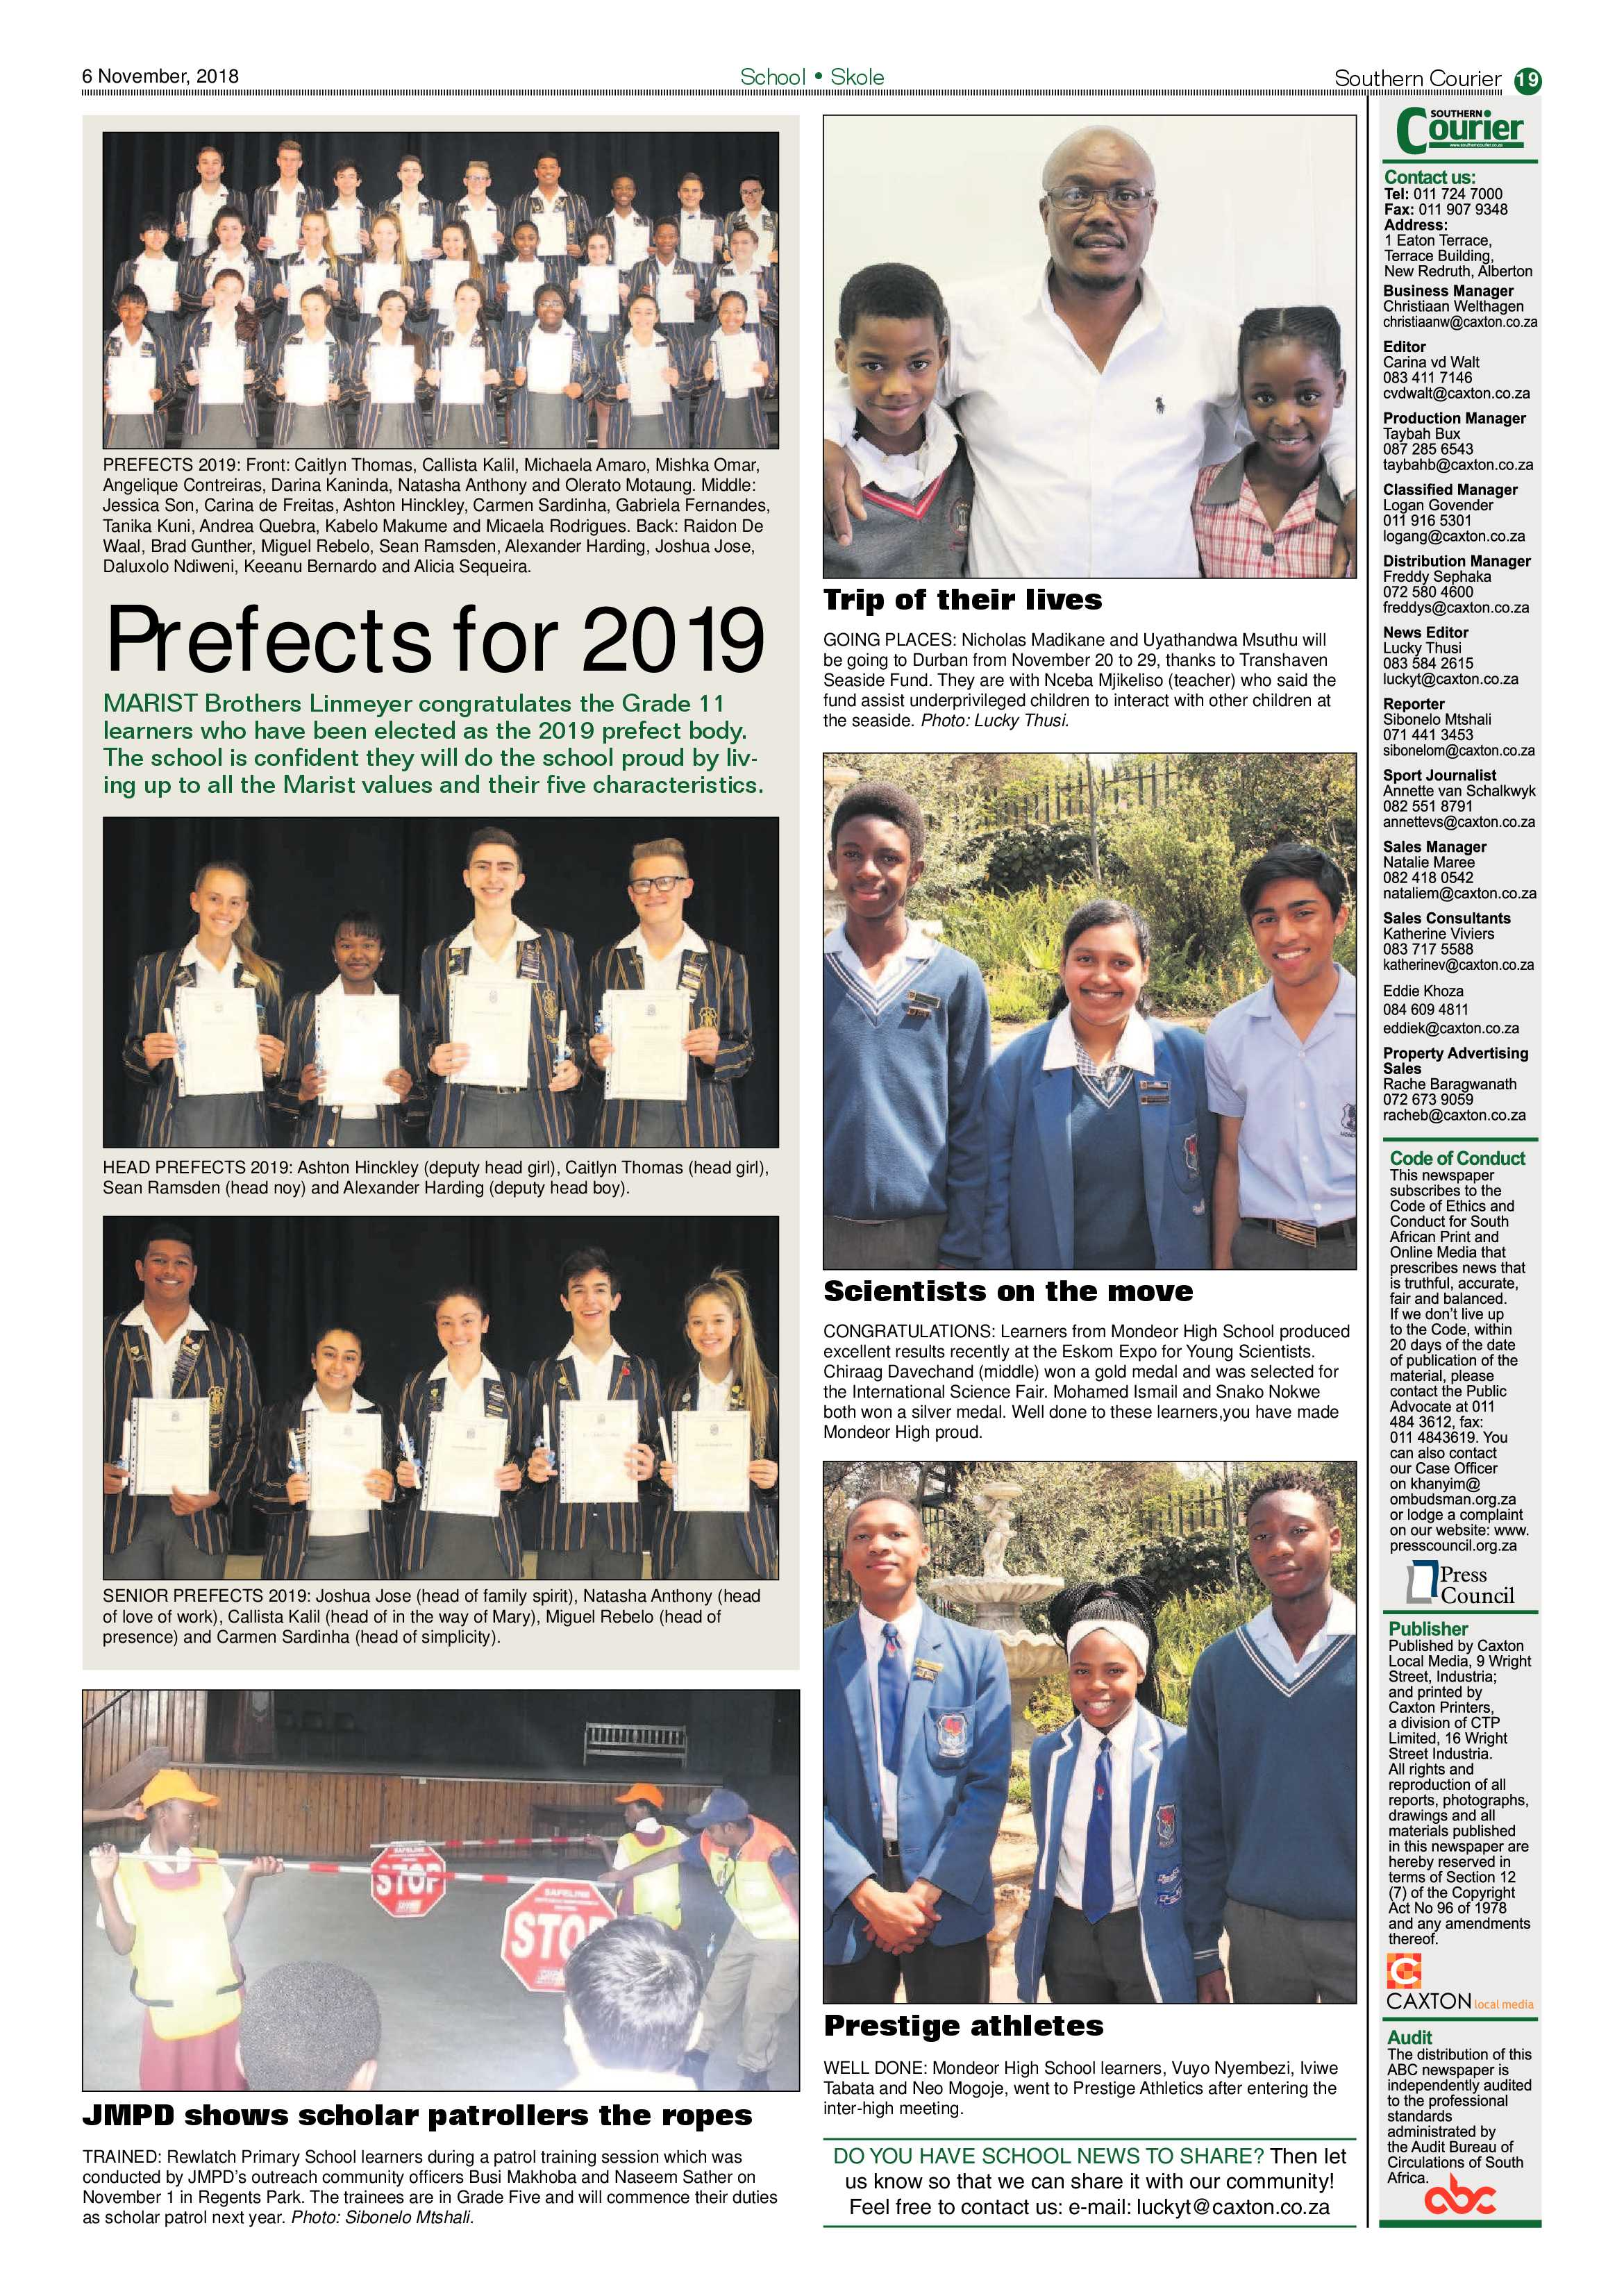 southern-courier-06-november-2018-epapers-page-19